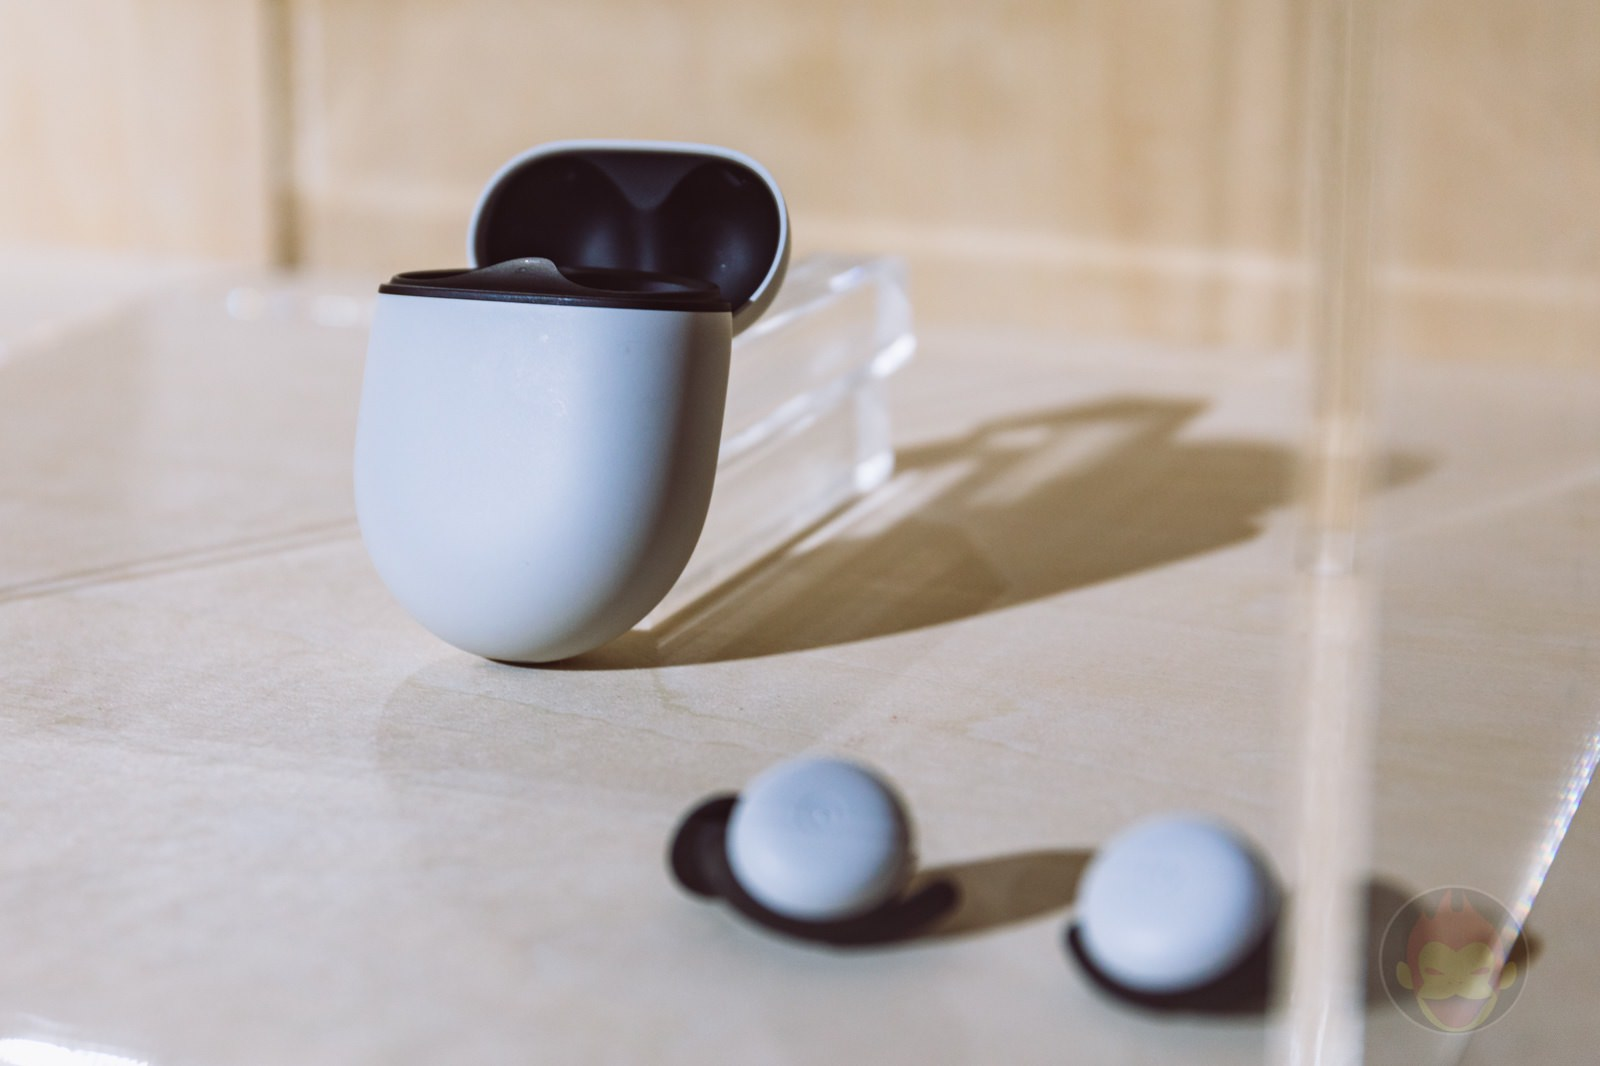 Google-PixelBuds-Photo-Review-01.jpg